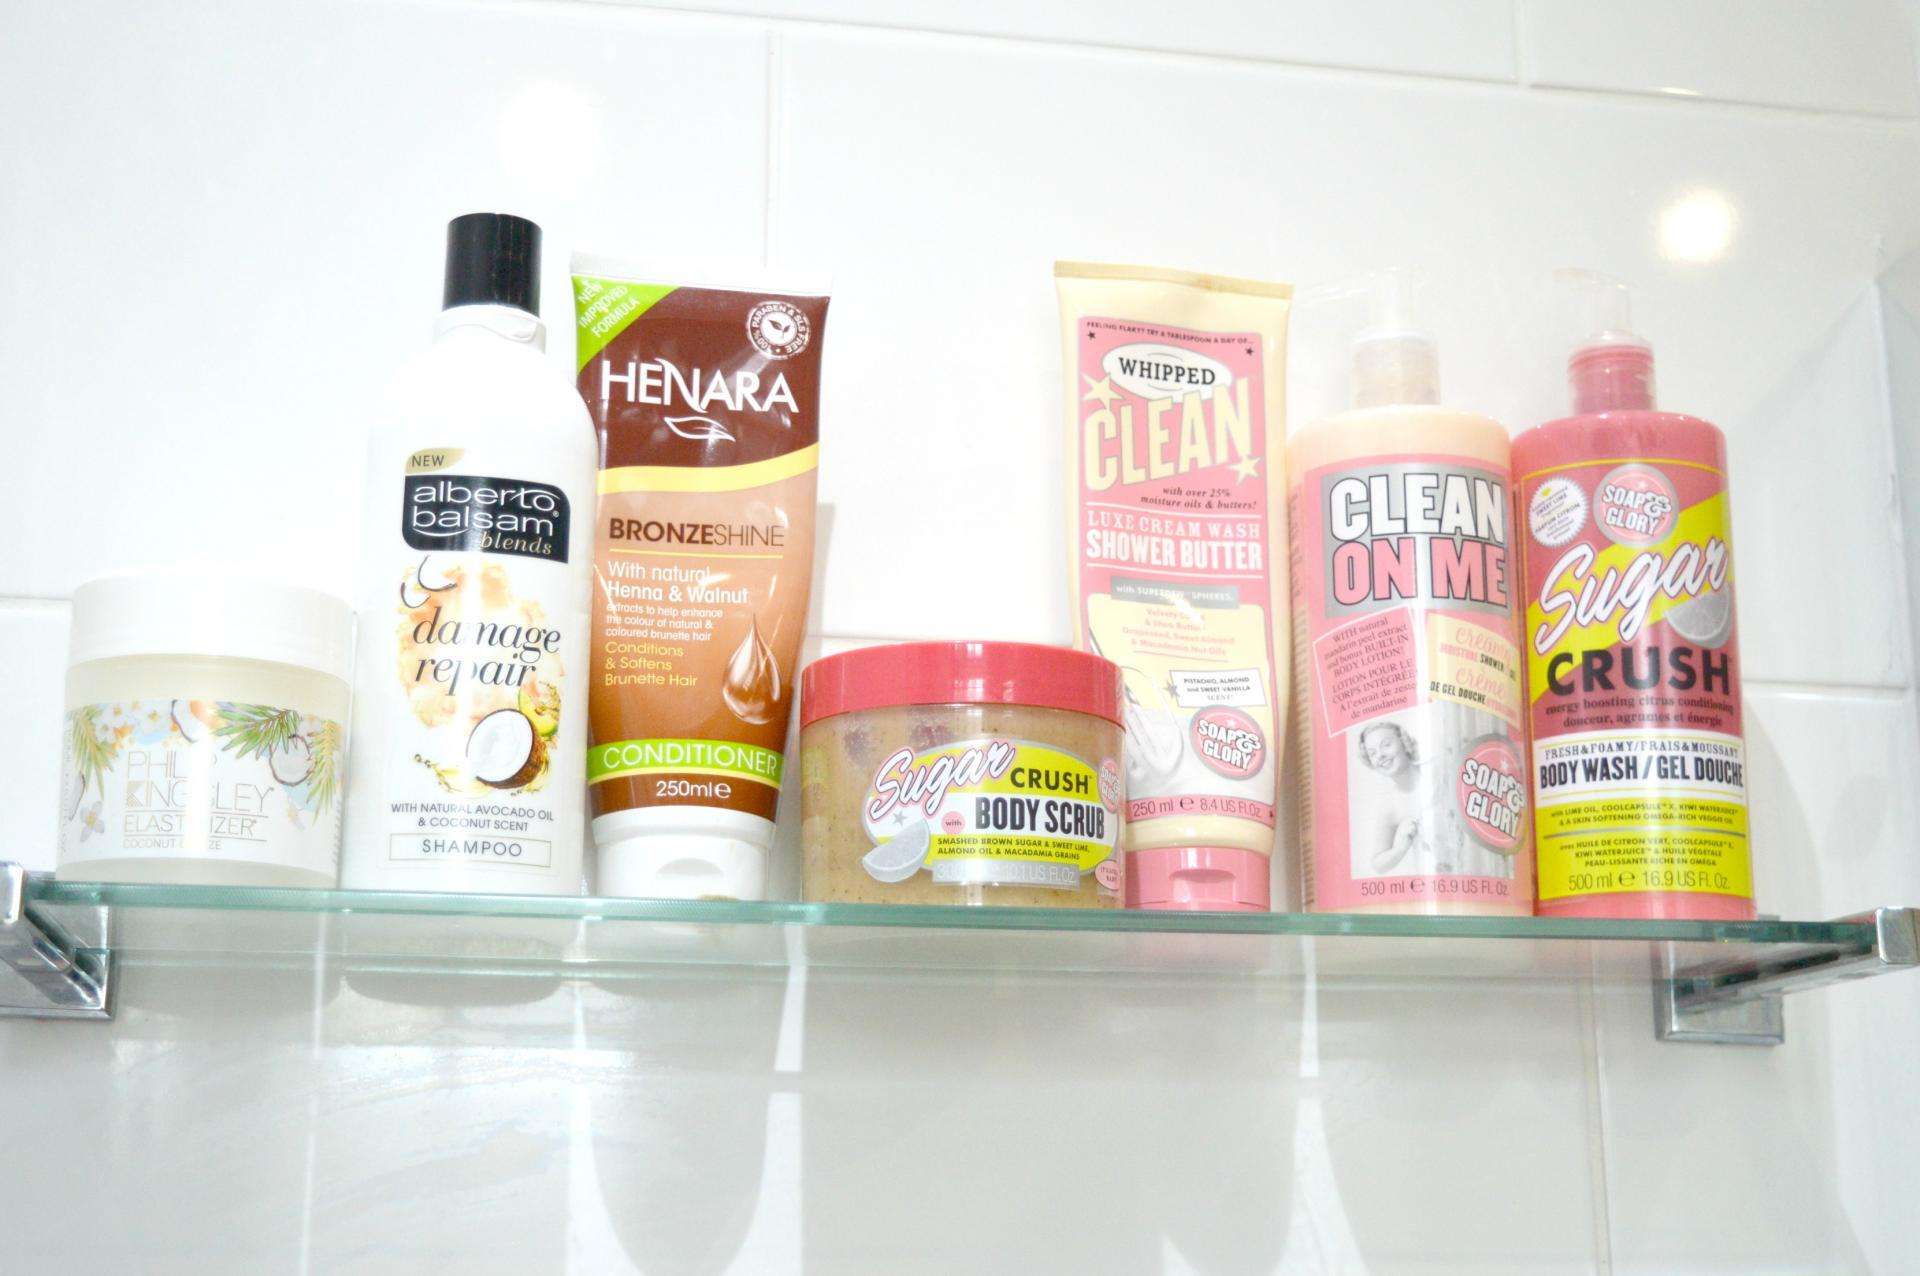 7 Brilliant Products That Are In My Shower: Philip Kingsley Coconut Breeze Elasticizer, Alberto Balsam Damage Repair Shampoo, Henara Bronze Shine Conditioner, Soap and Glory Sugar Crush Body Scrub, Soap and Glory Whipped Shower Butter, Soap and Glory Clean On Me Shower Gel and Soap and Glory Sugar Crush Shower Gel